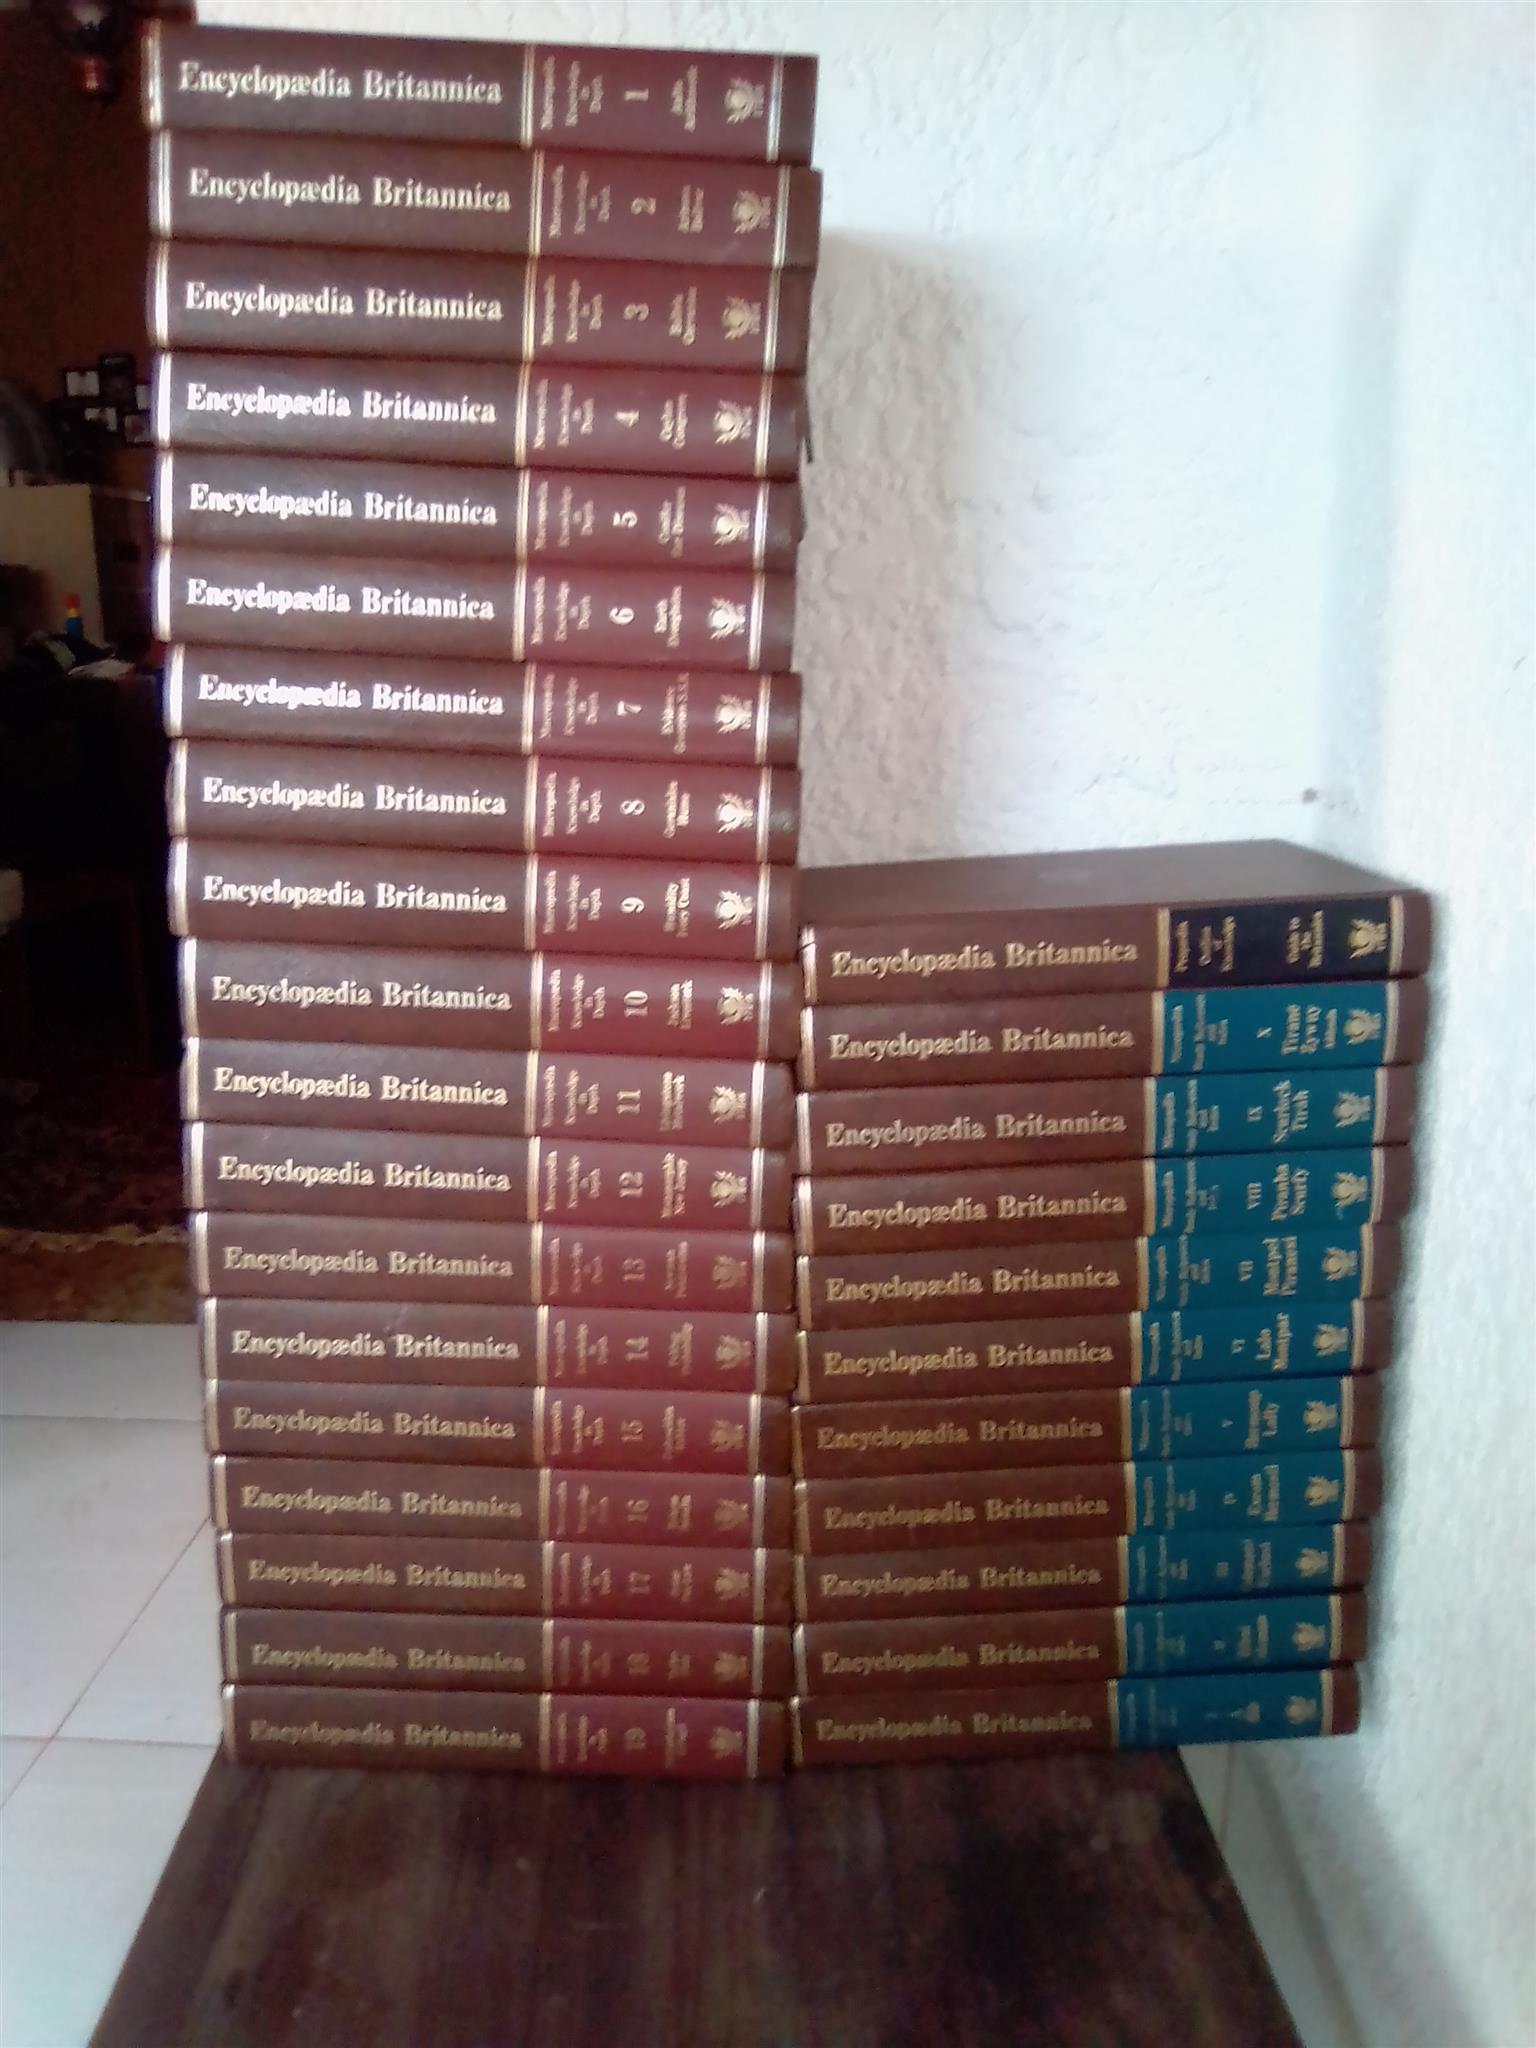 Encyclopaedia Britannica Full Set. Macropaedia 19 Books. Micropaedia 10 Books.  Propaedia One Book. Total 30 Books. Collectors Items. Well looked after.